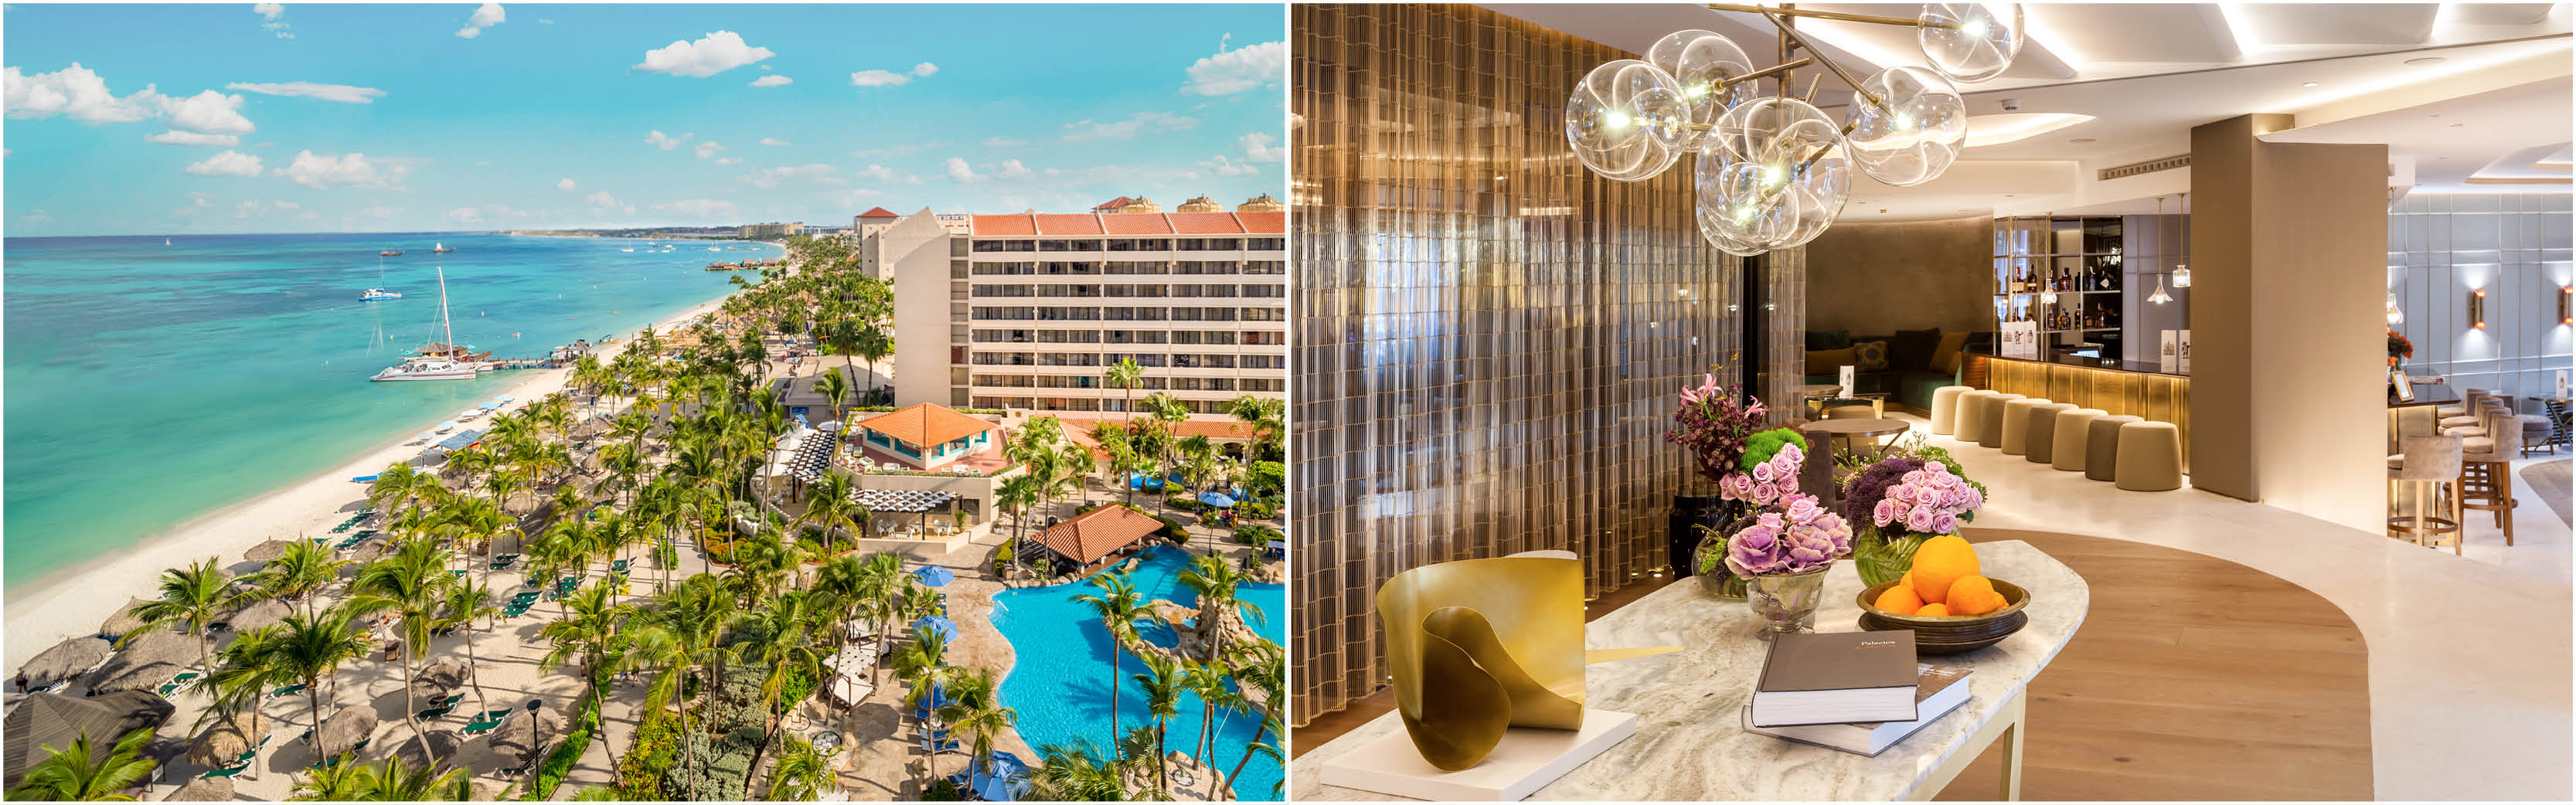 SiteMinder wins Barcelo Hotels